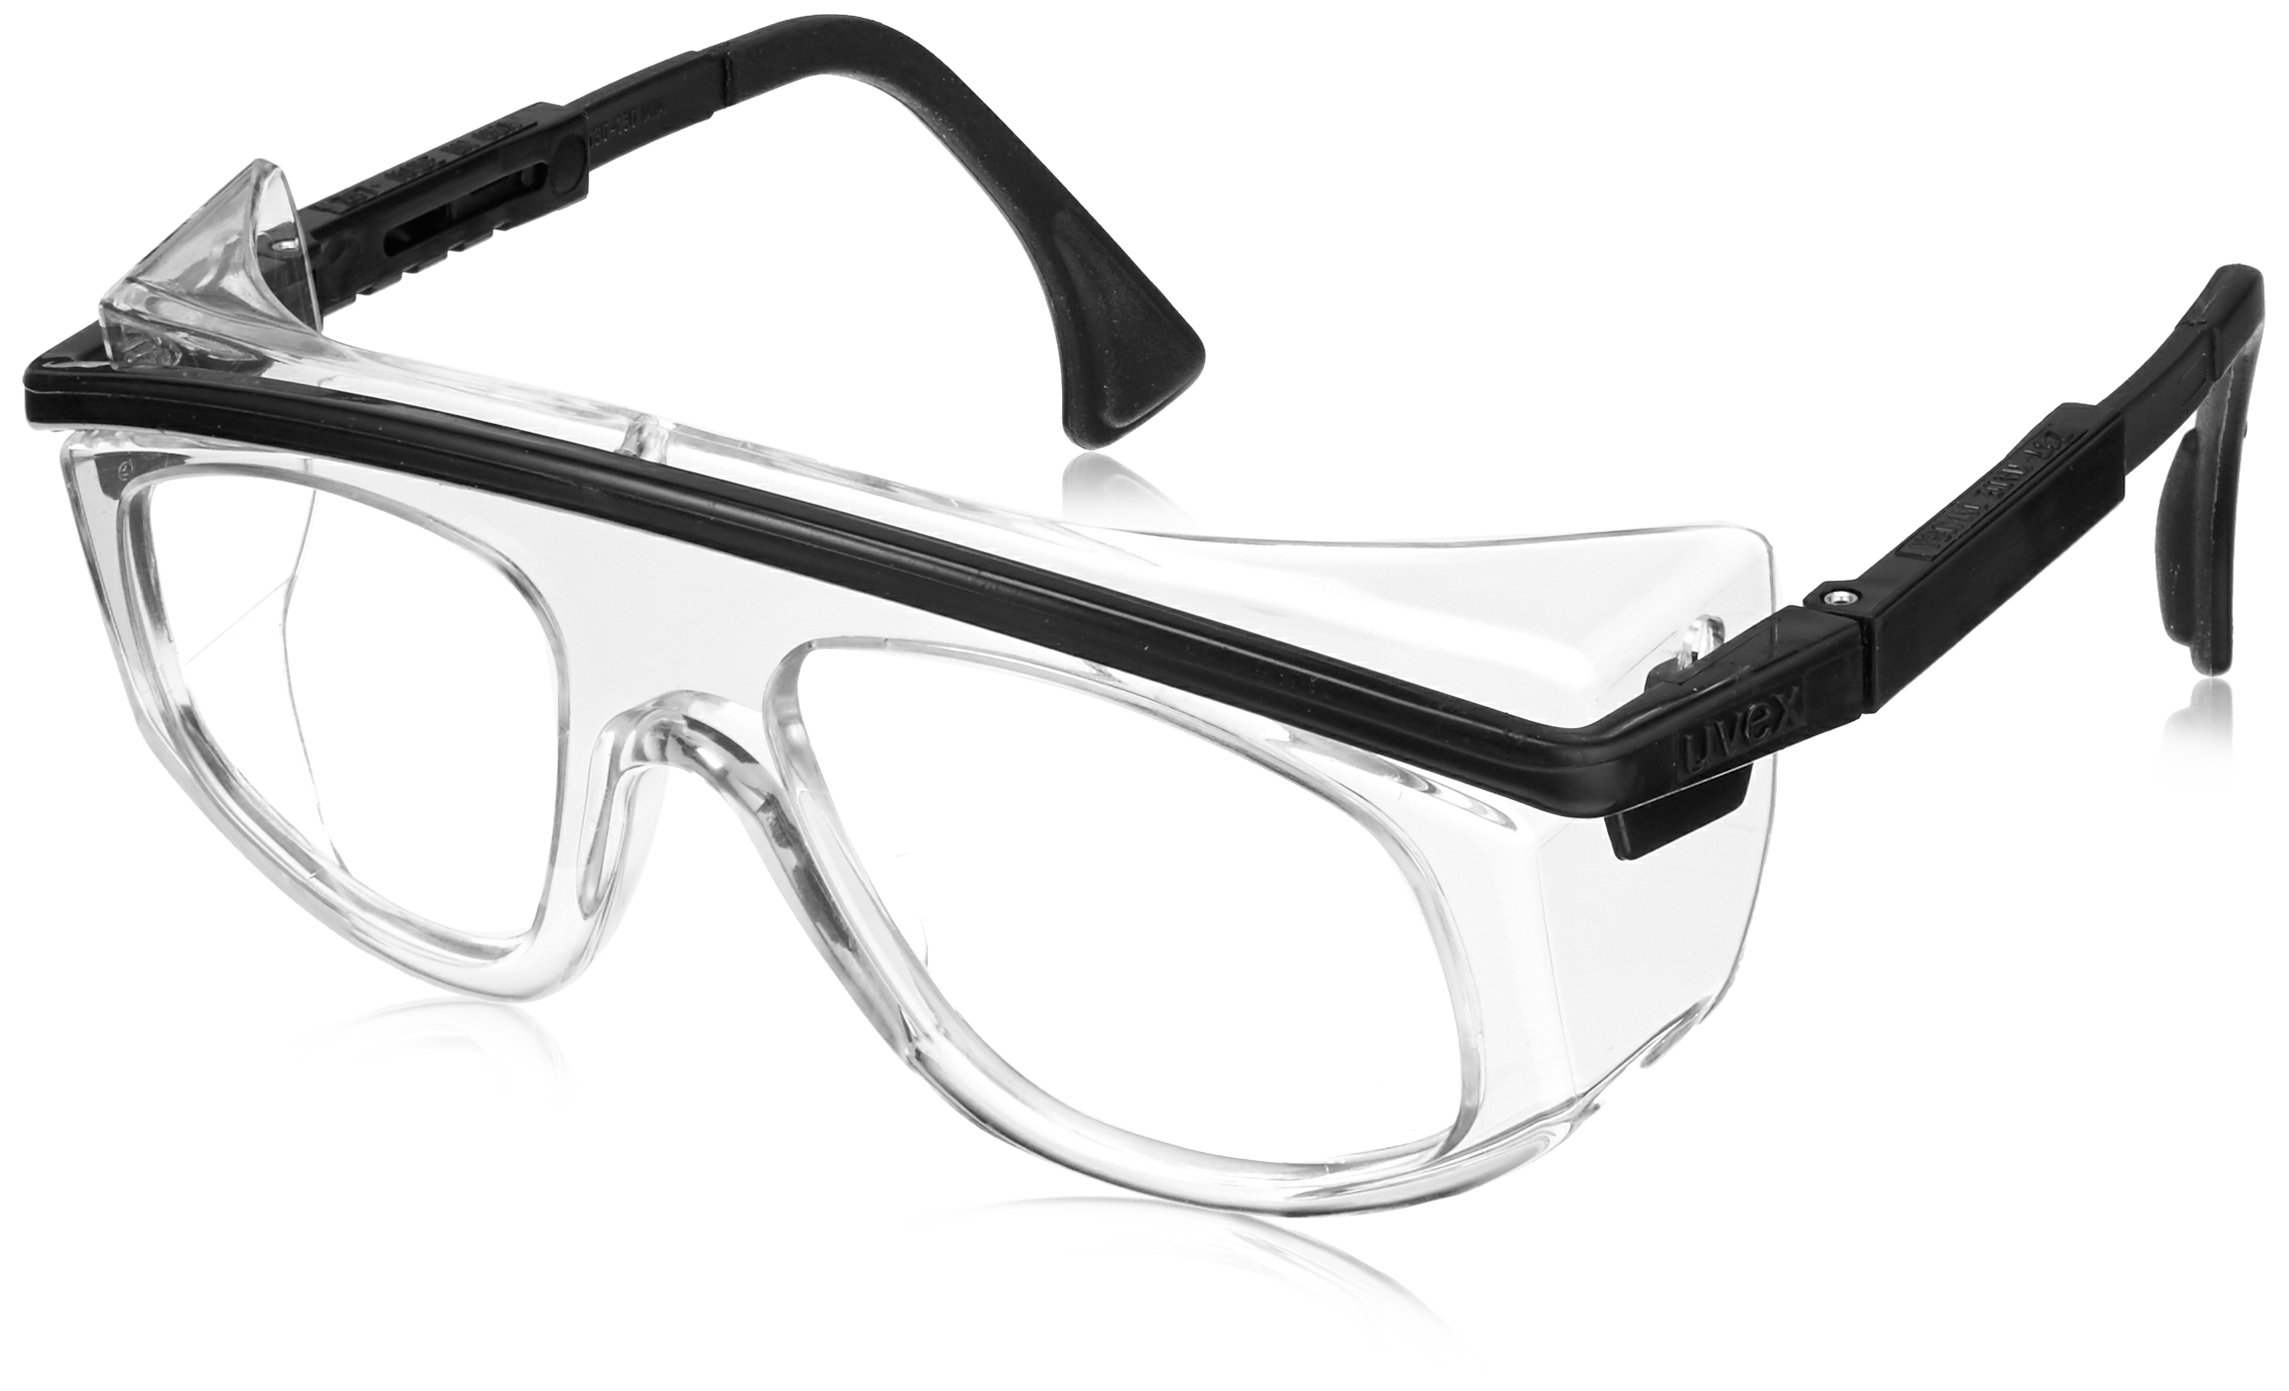 Uvex S2570 Astro Rx 3003 Safety Eyewear, Black Frame, Clear Lens